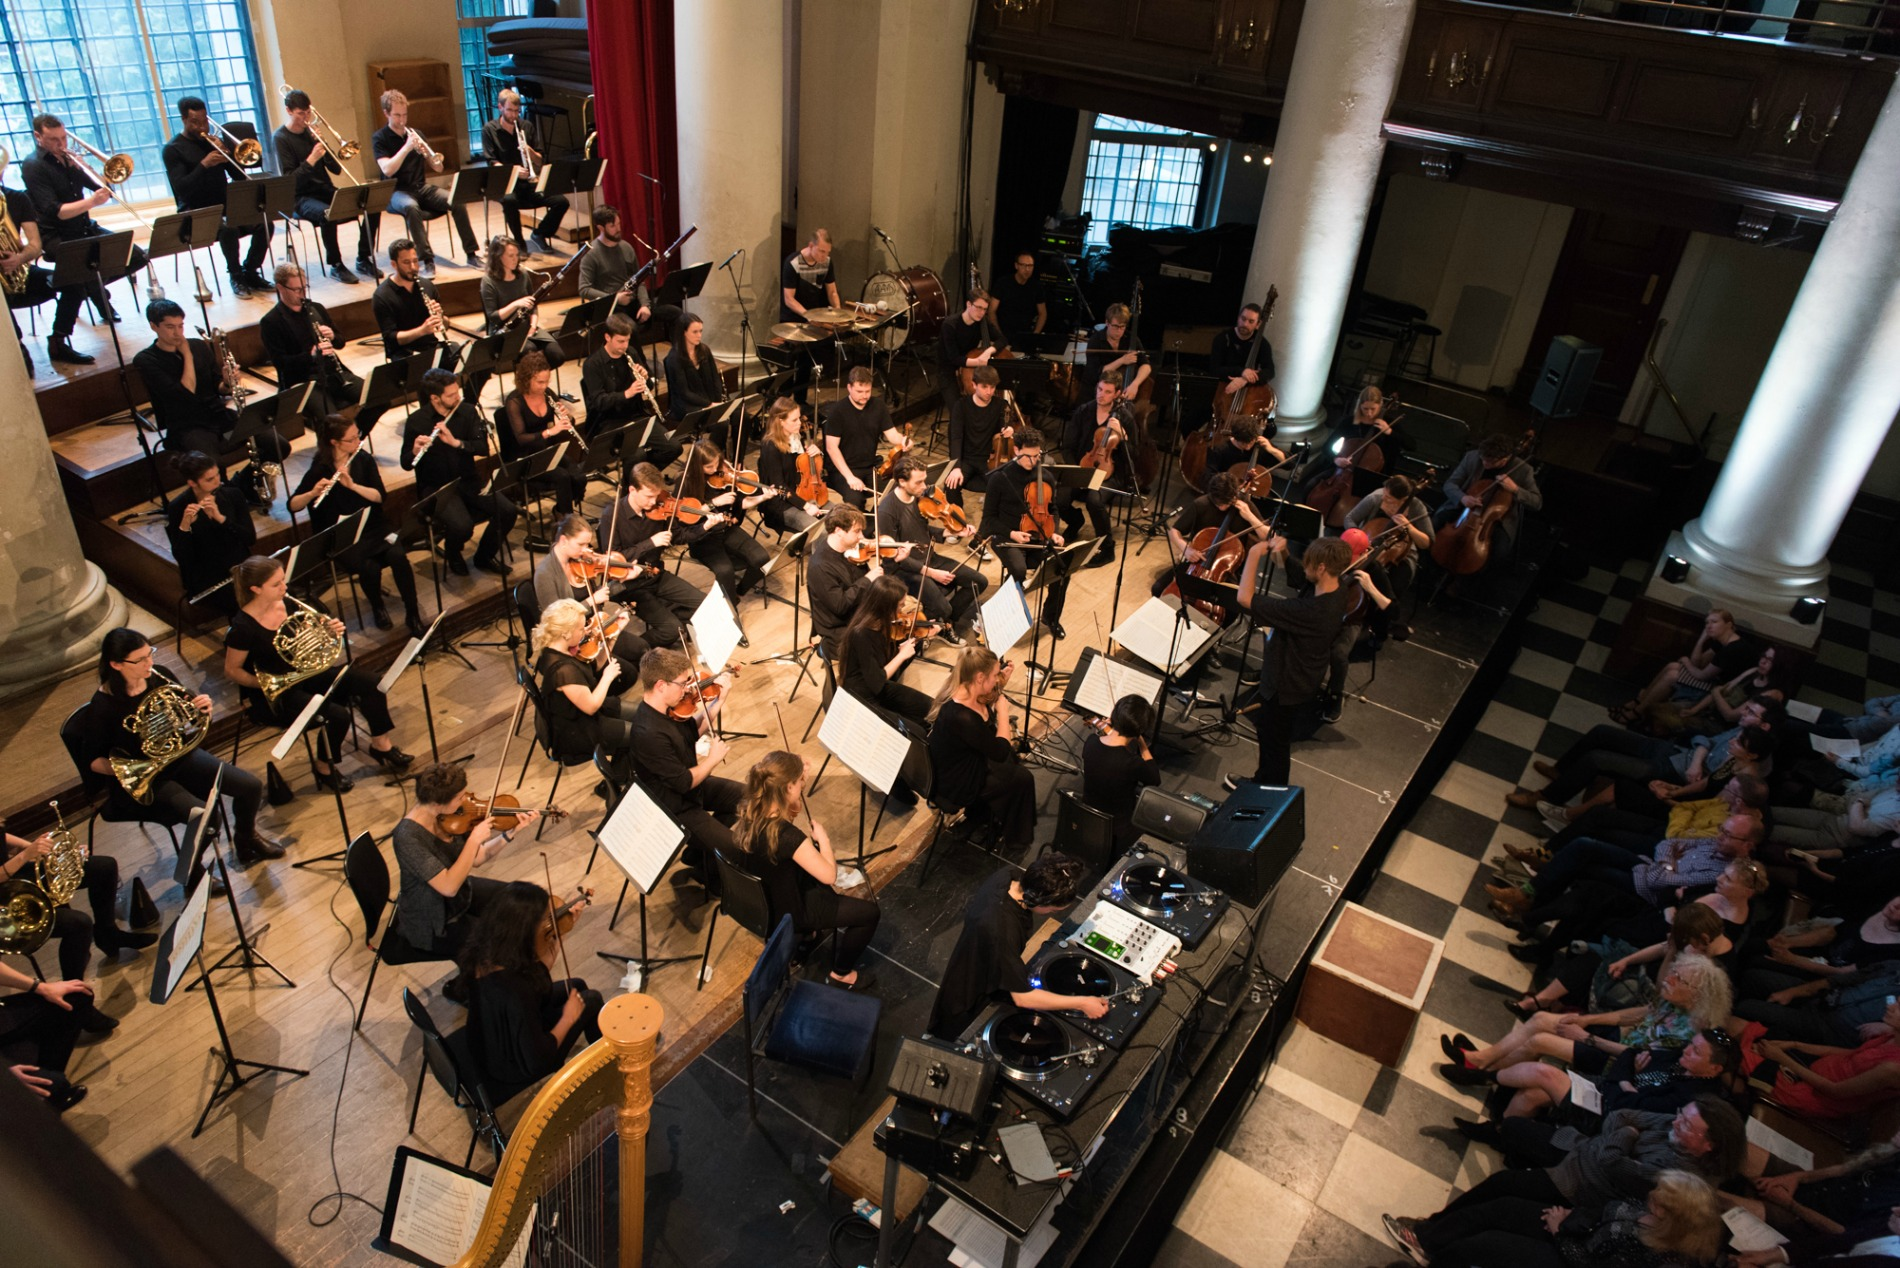 'Still Point' performance at St John's Smith Square